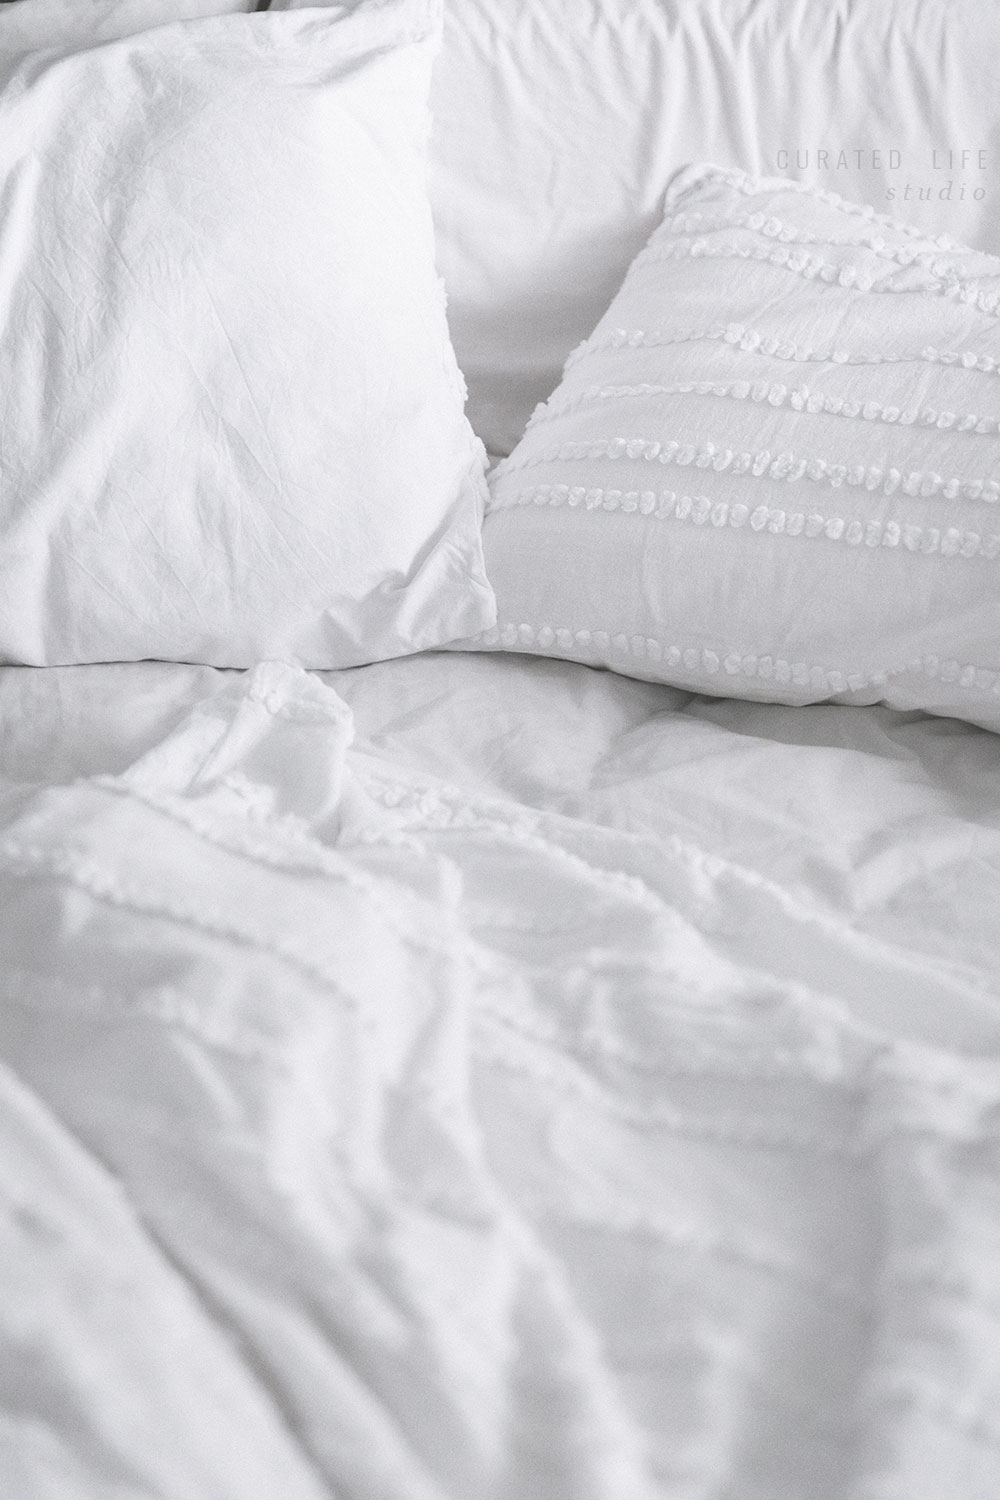 A close up of the bedlinen messily scattered over the bed. Breakfast is finished and the day now begins.